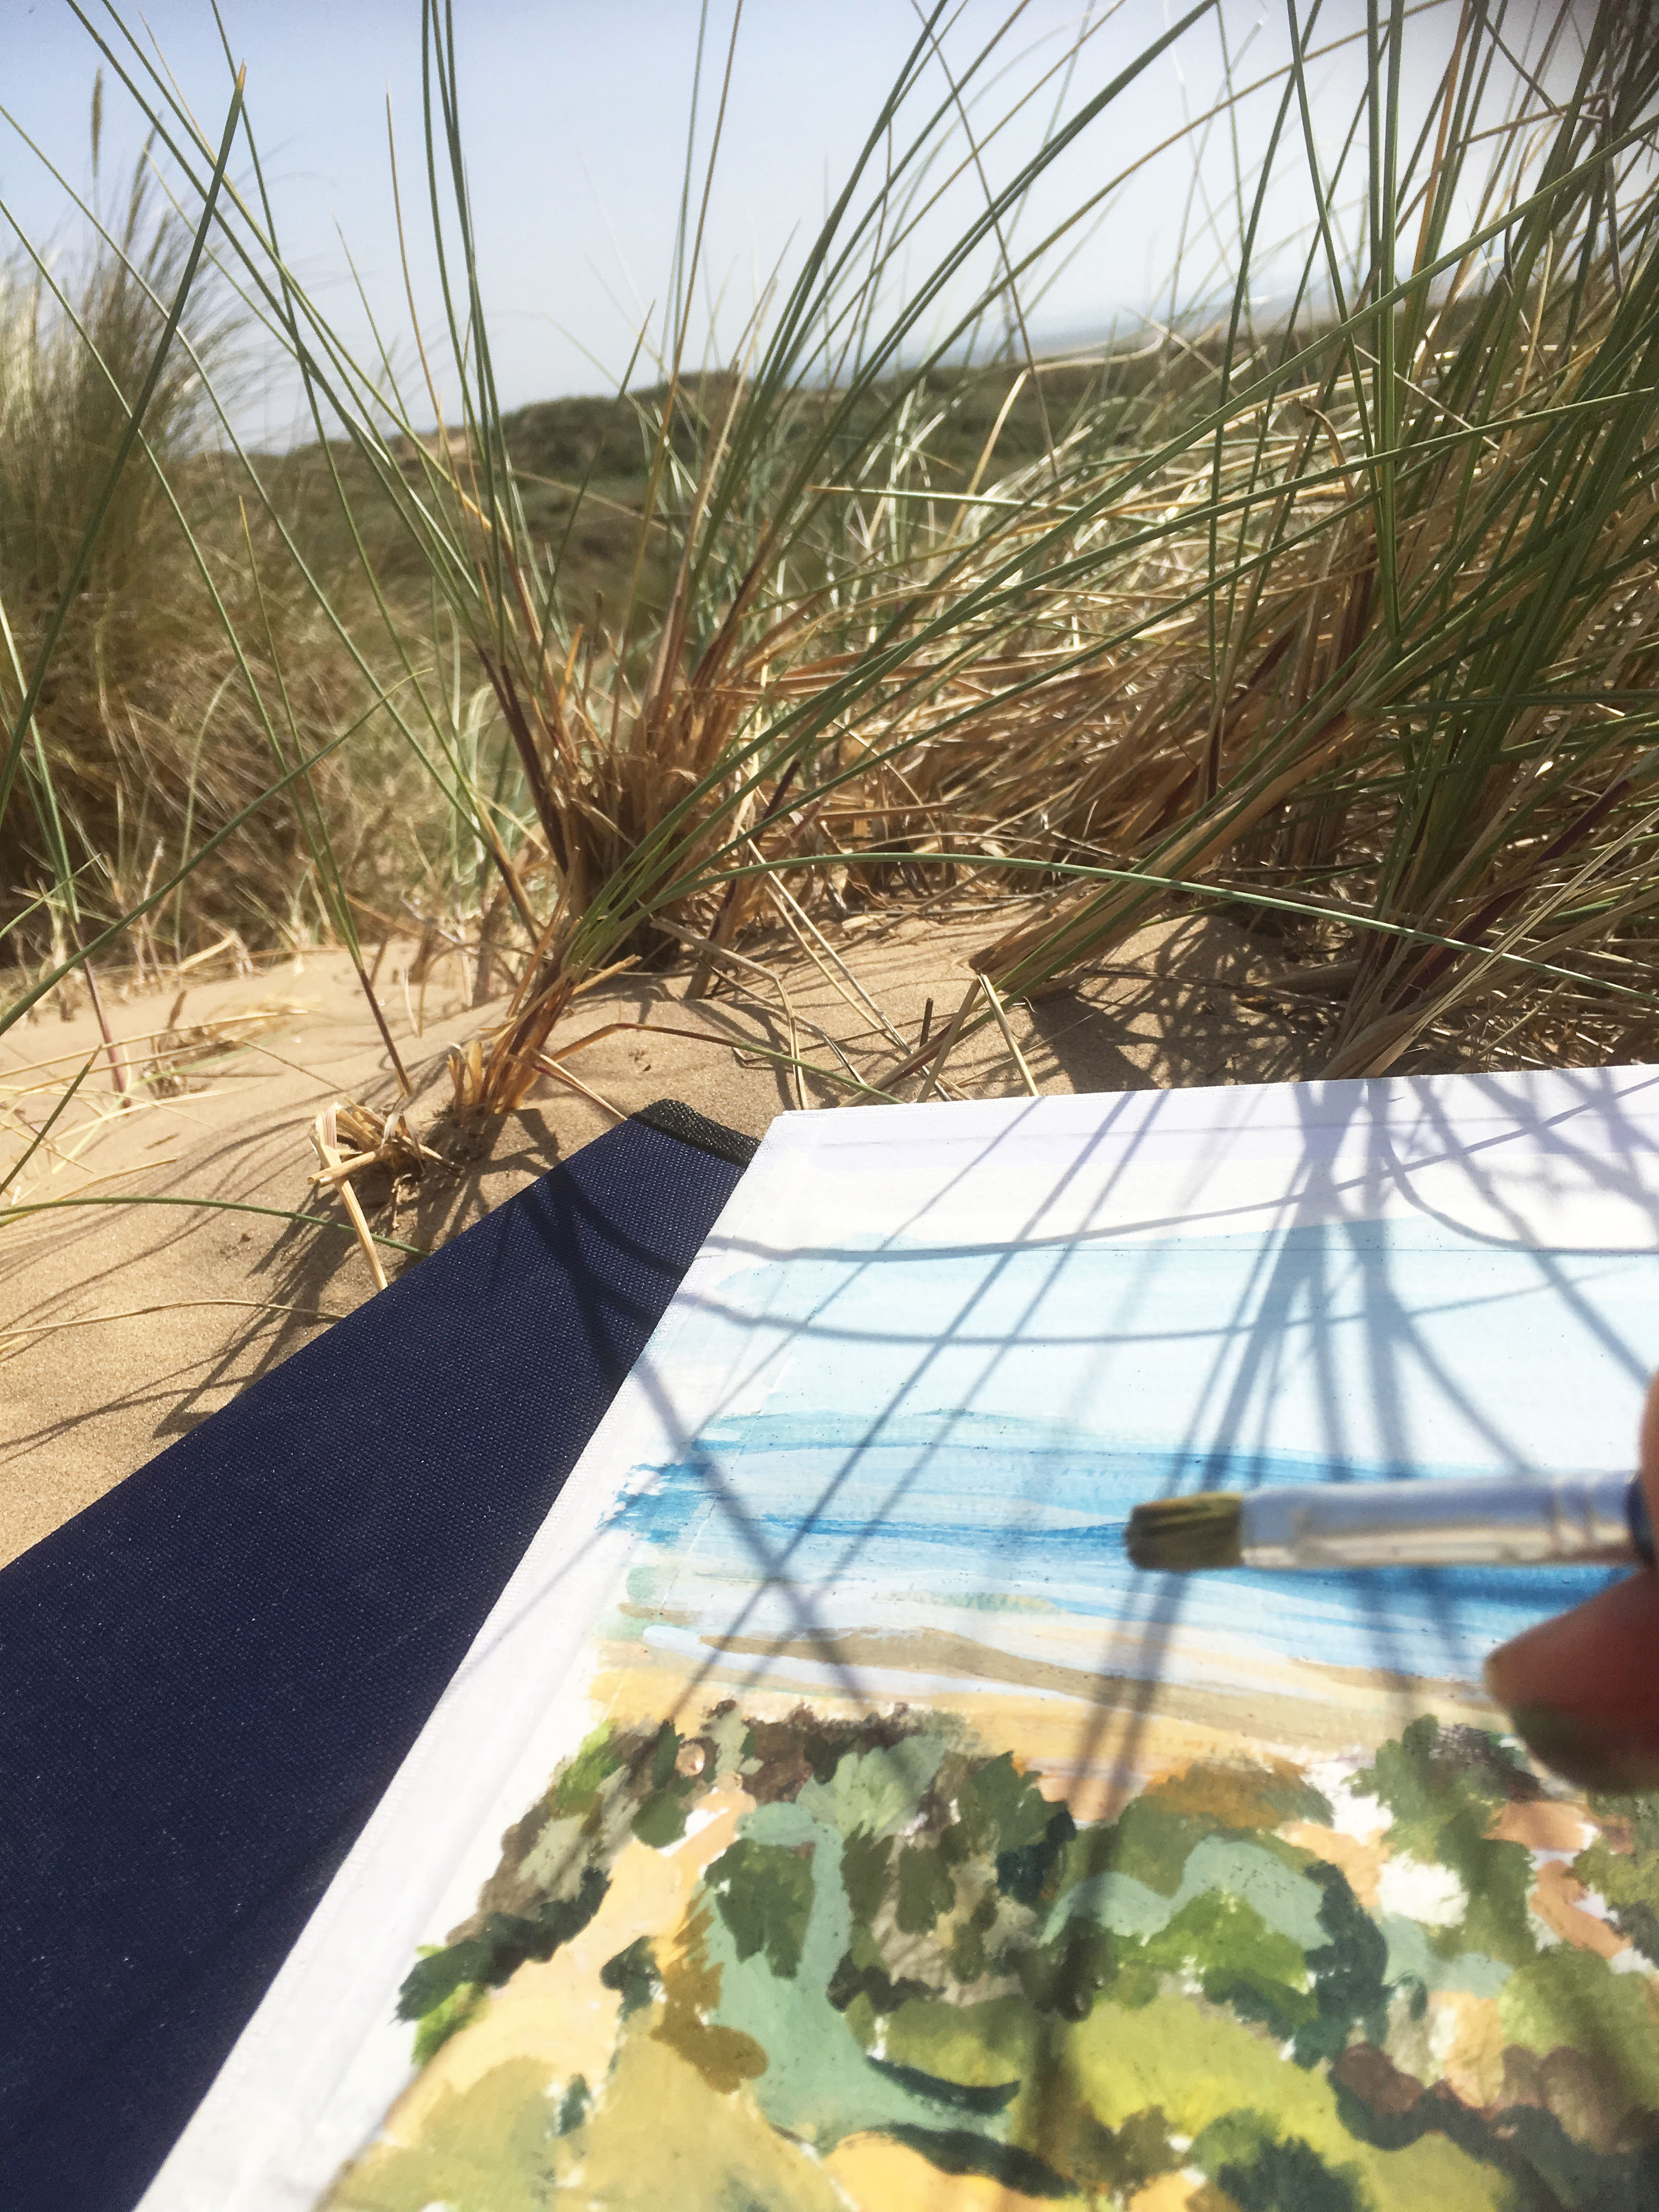 St Luke's Church, Formby: Gems in the Dunes, Outdoor Adult Painting Workshop